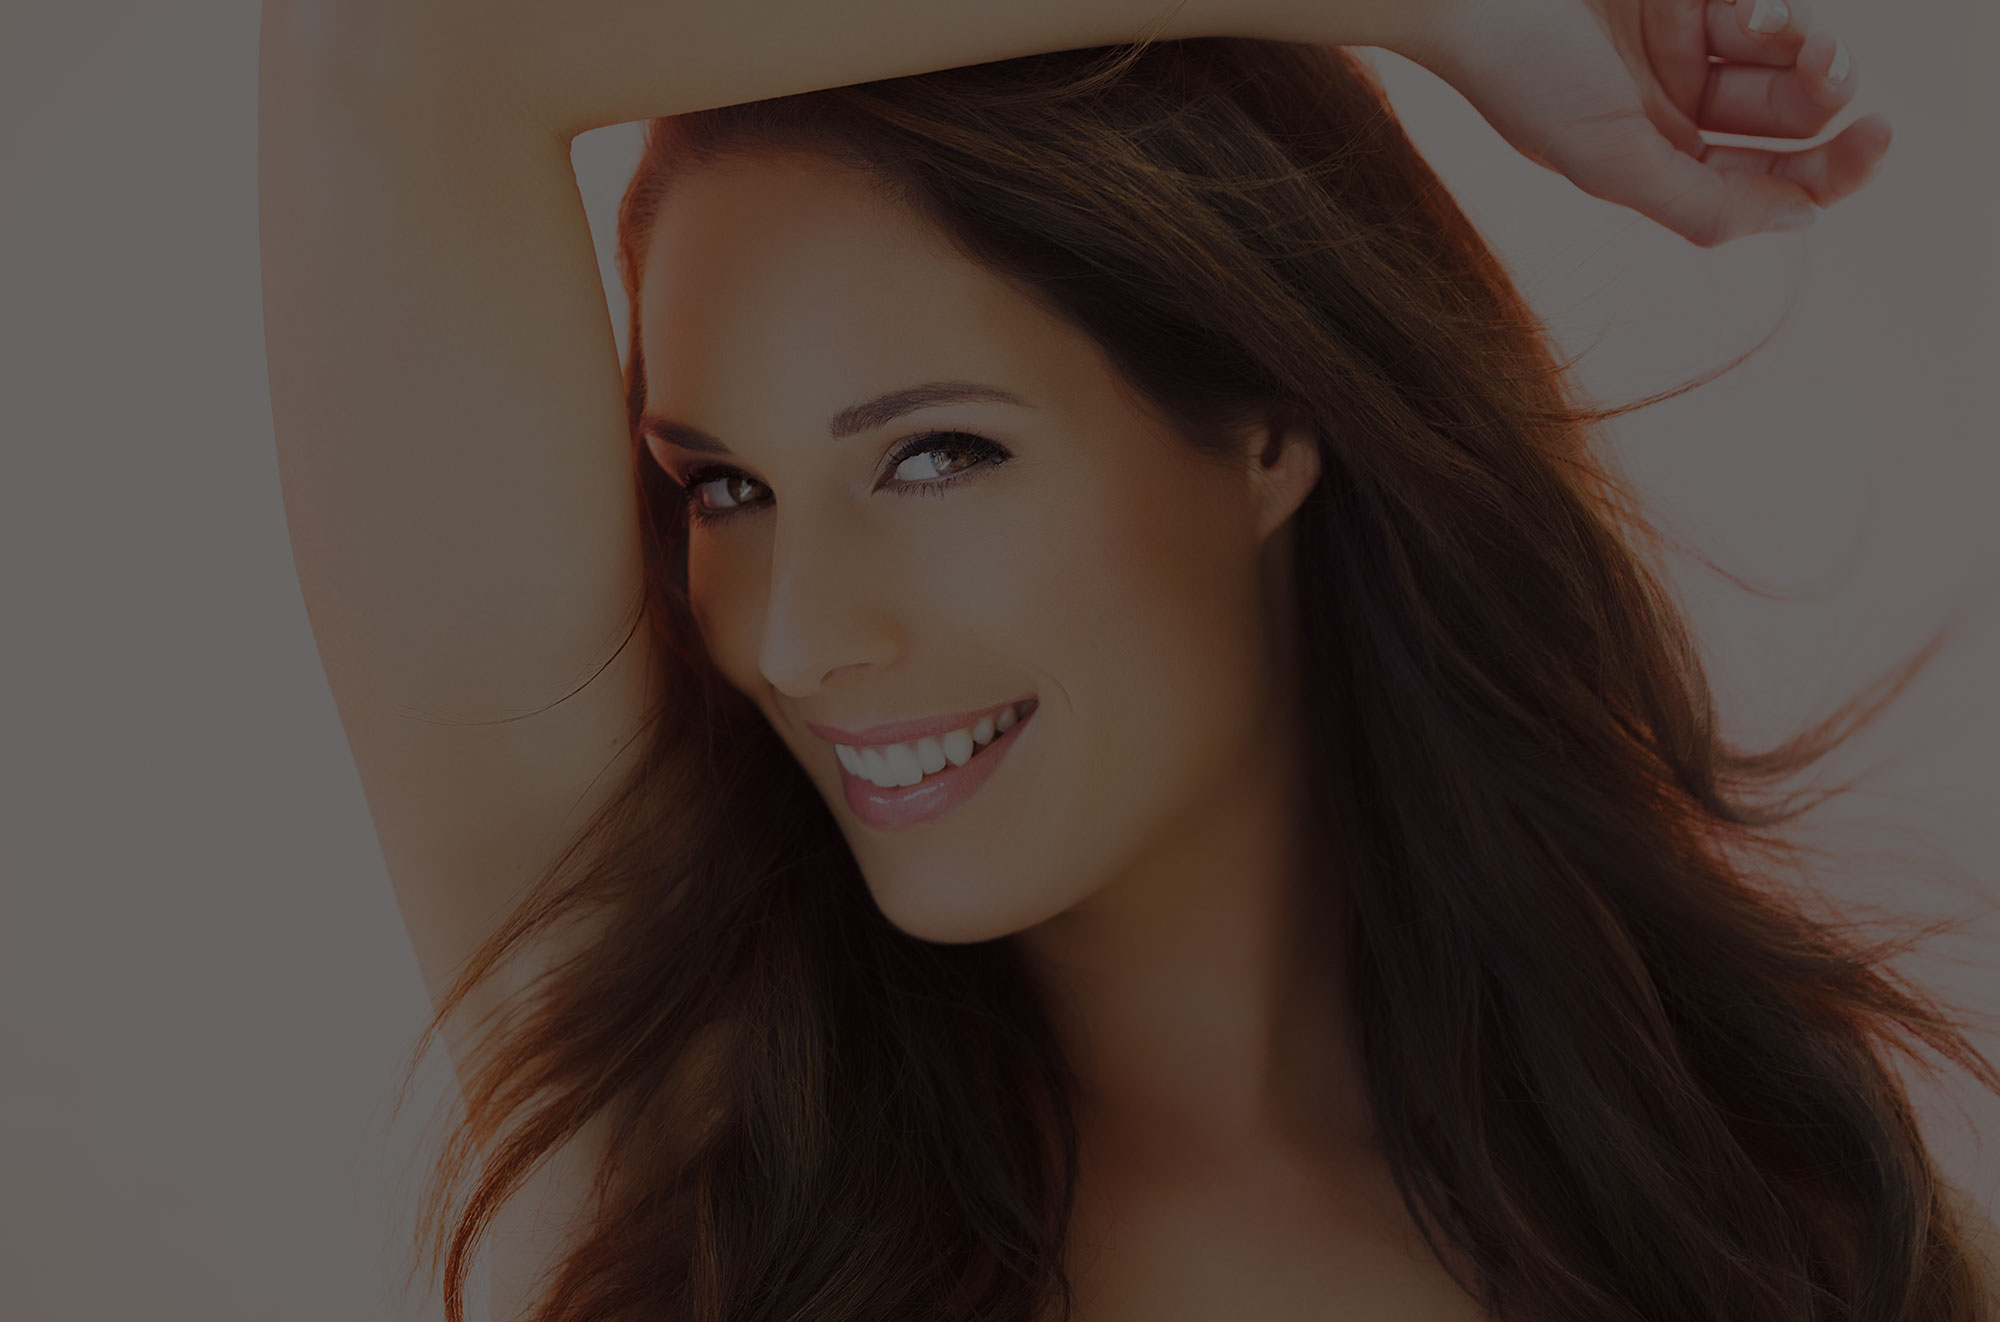 Woman with long brown hair and arm up to her head smiling and showing smooth forehead after brow lift.